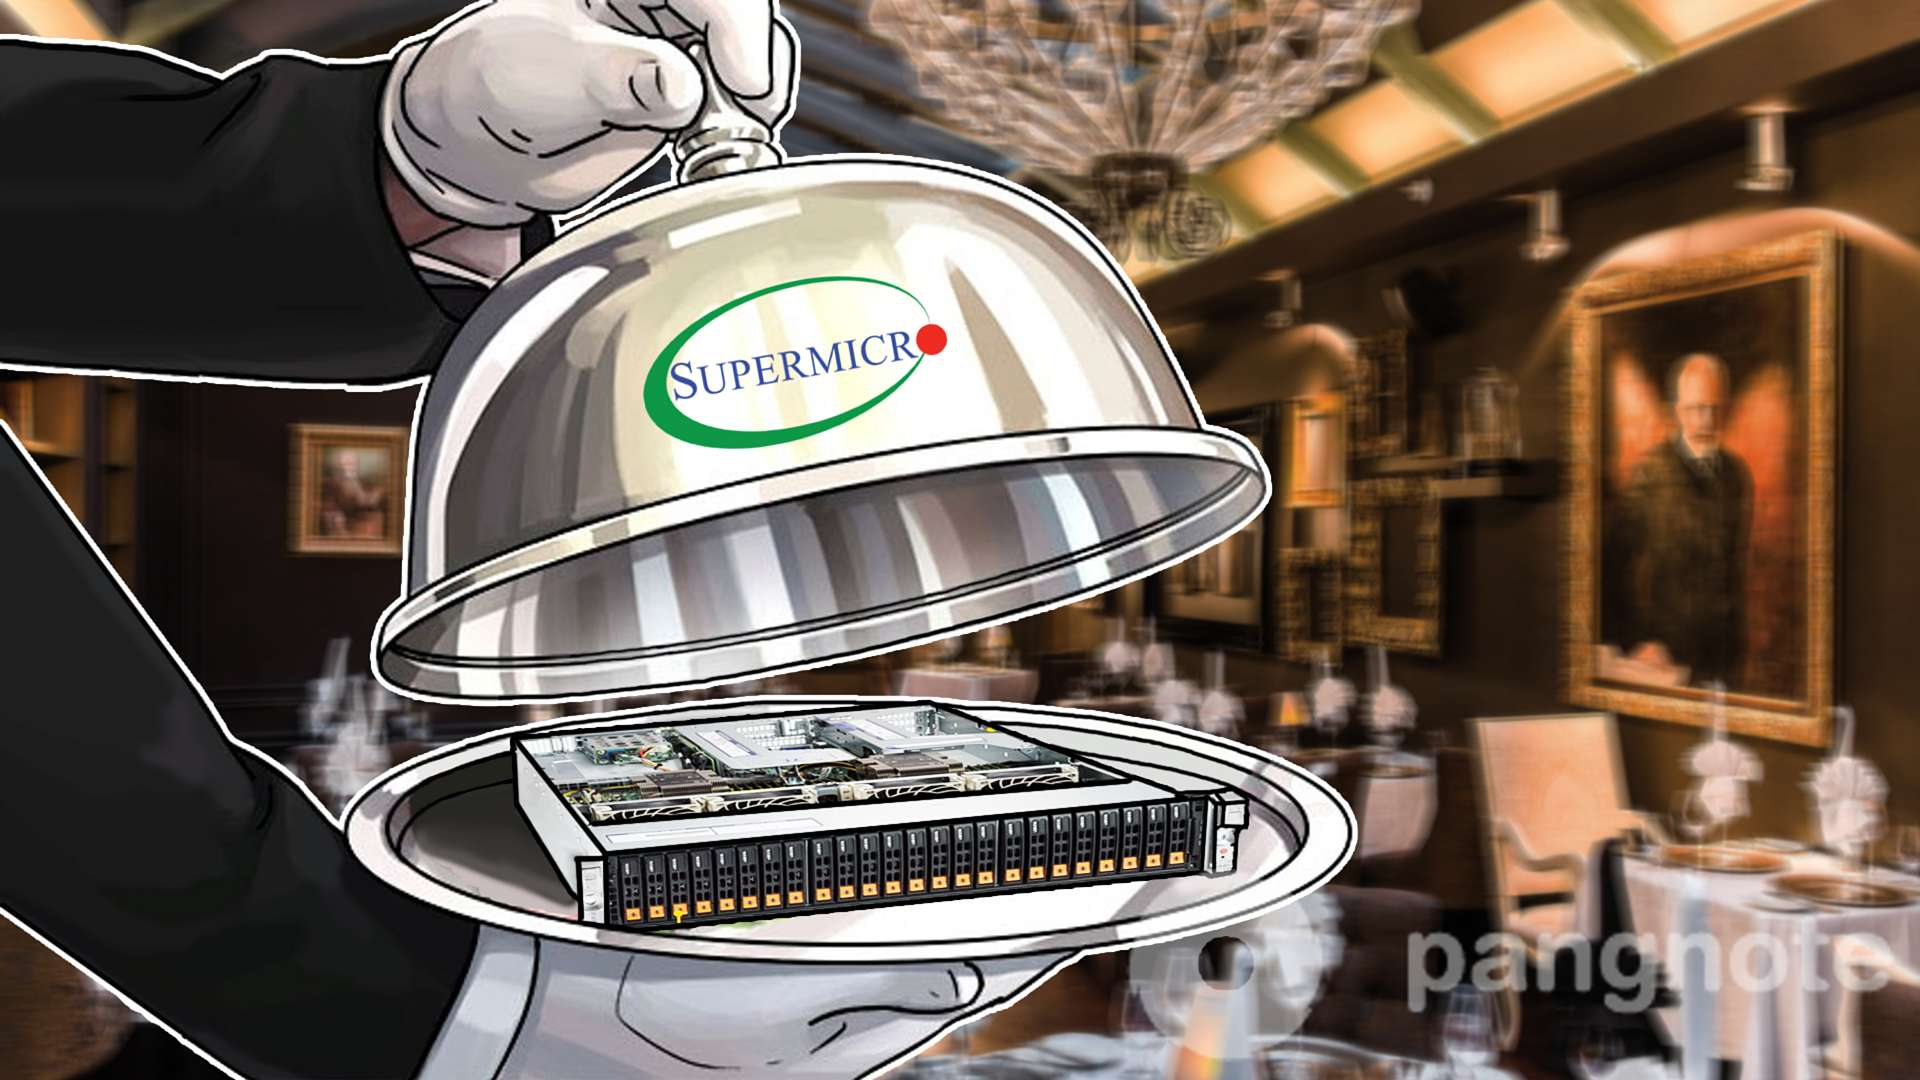 Supermicro released Platform with 320 PCI Express buses